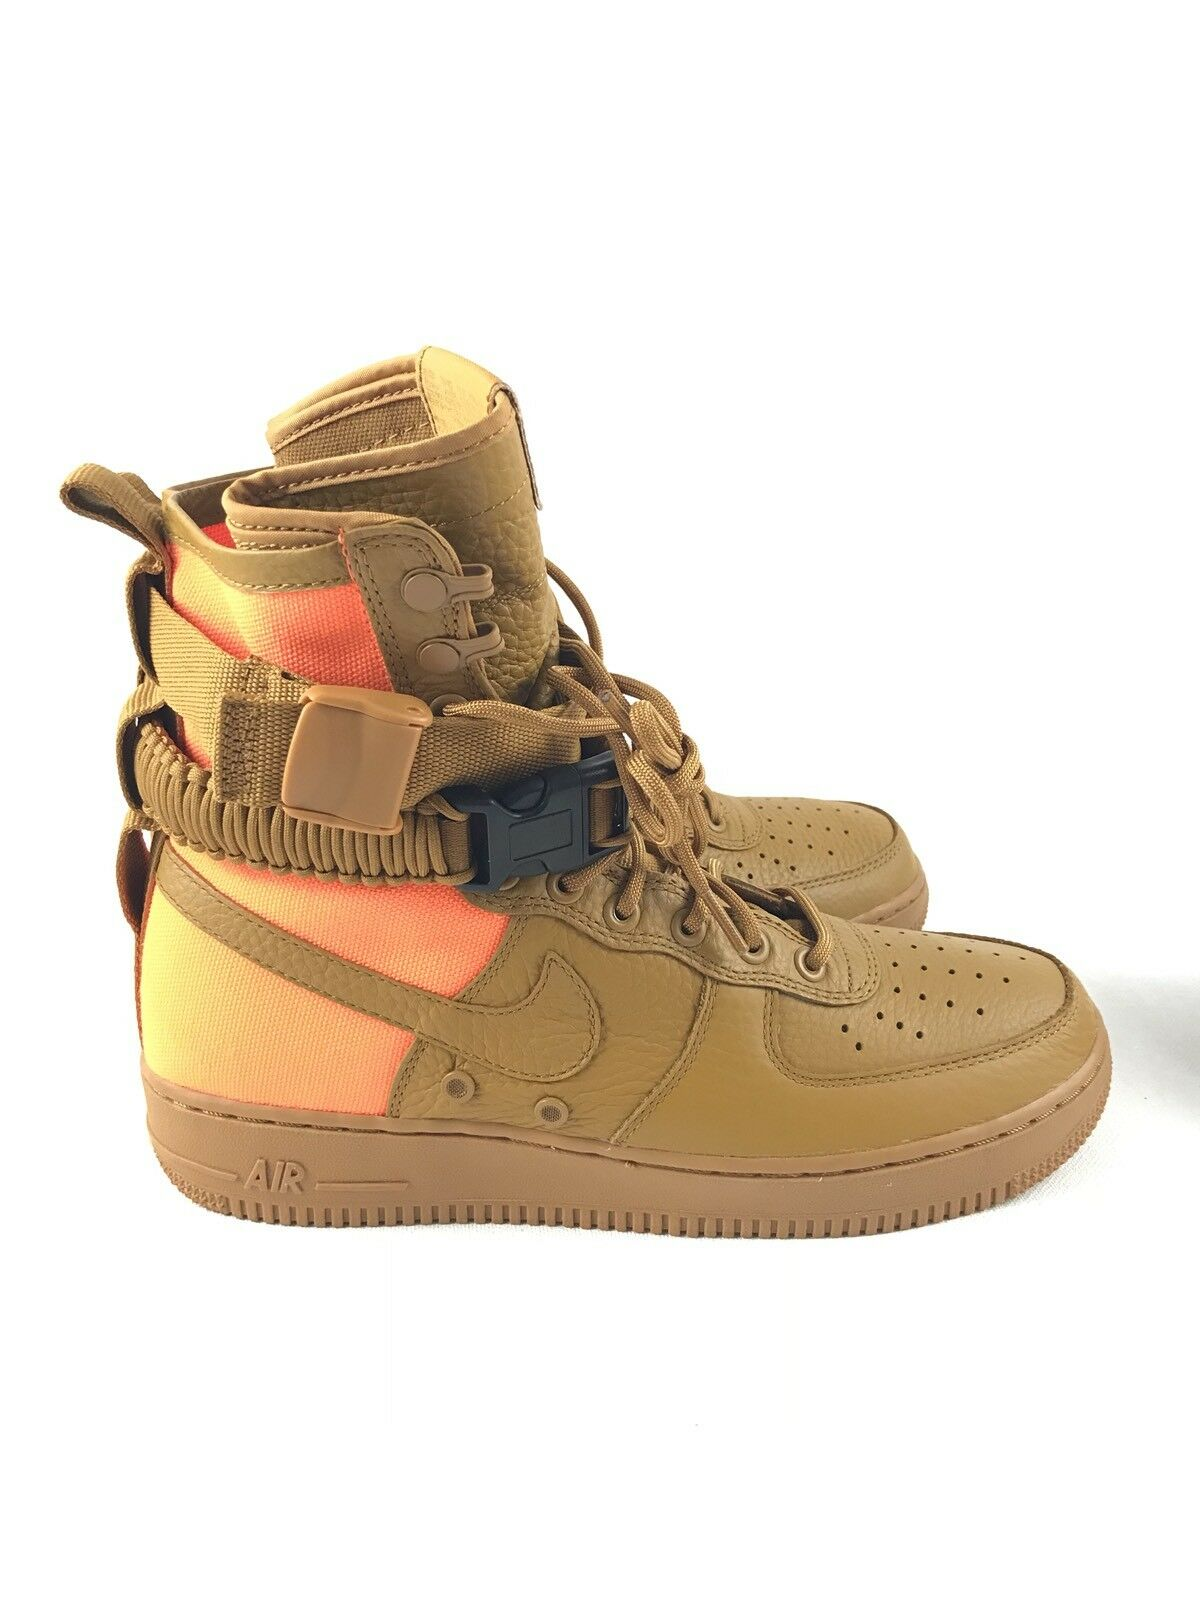 Nike hombre SF AF1 QS desierto 1 campo especial Air Force 1 desierto 903270-778 ocre talla 9 06f61a